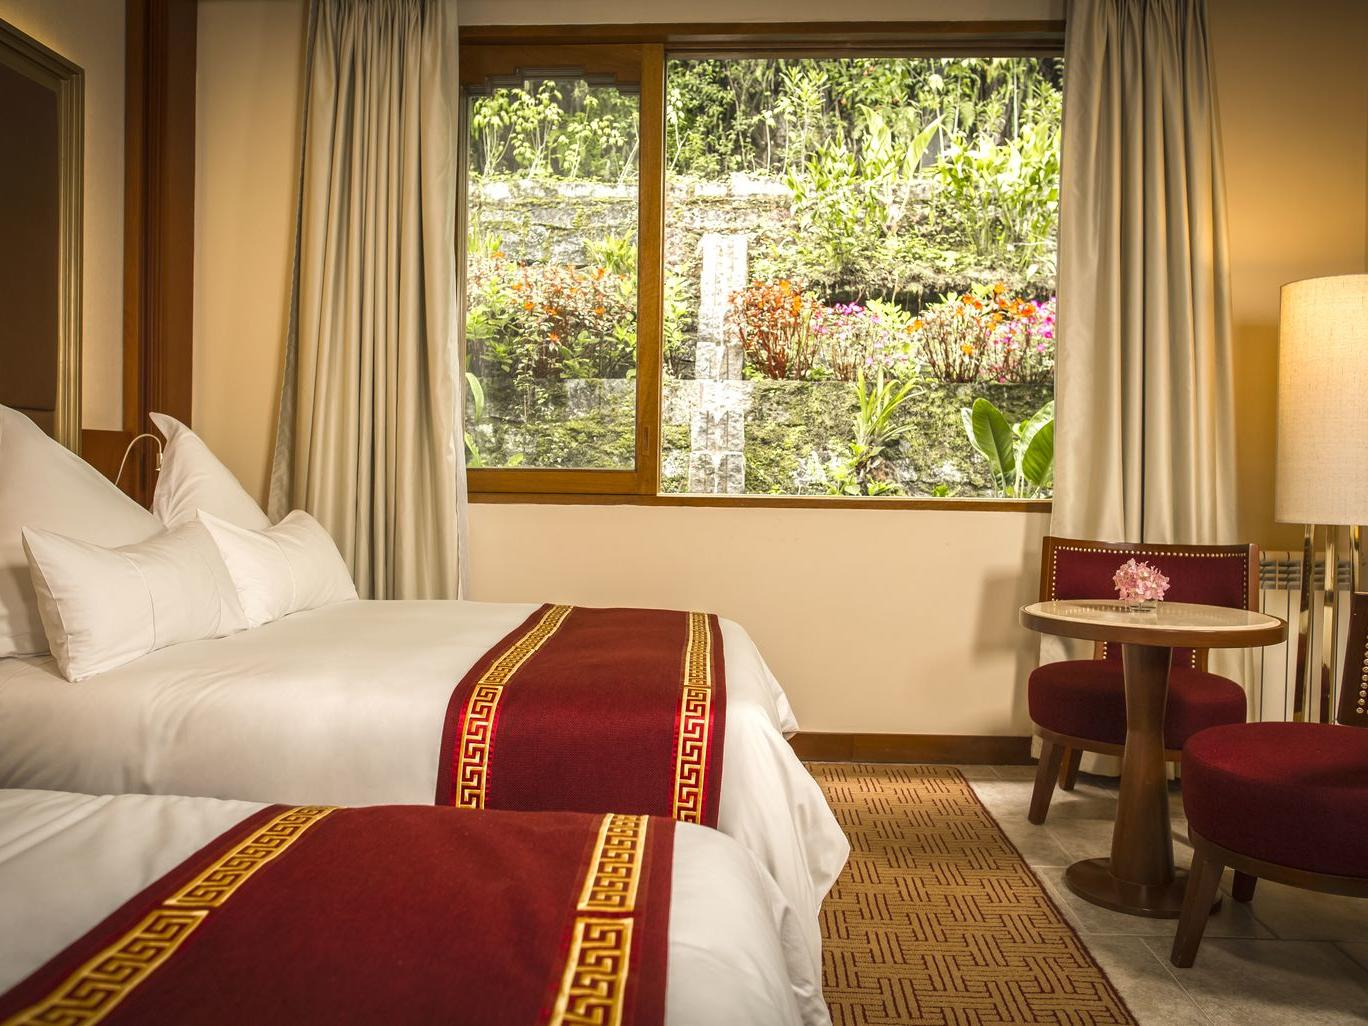 Double beds in Sumaq Deluxe with garden view at Hotel Sumaq